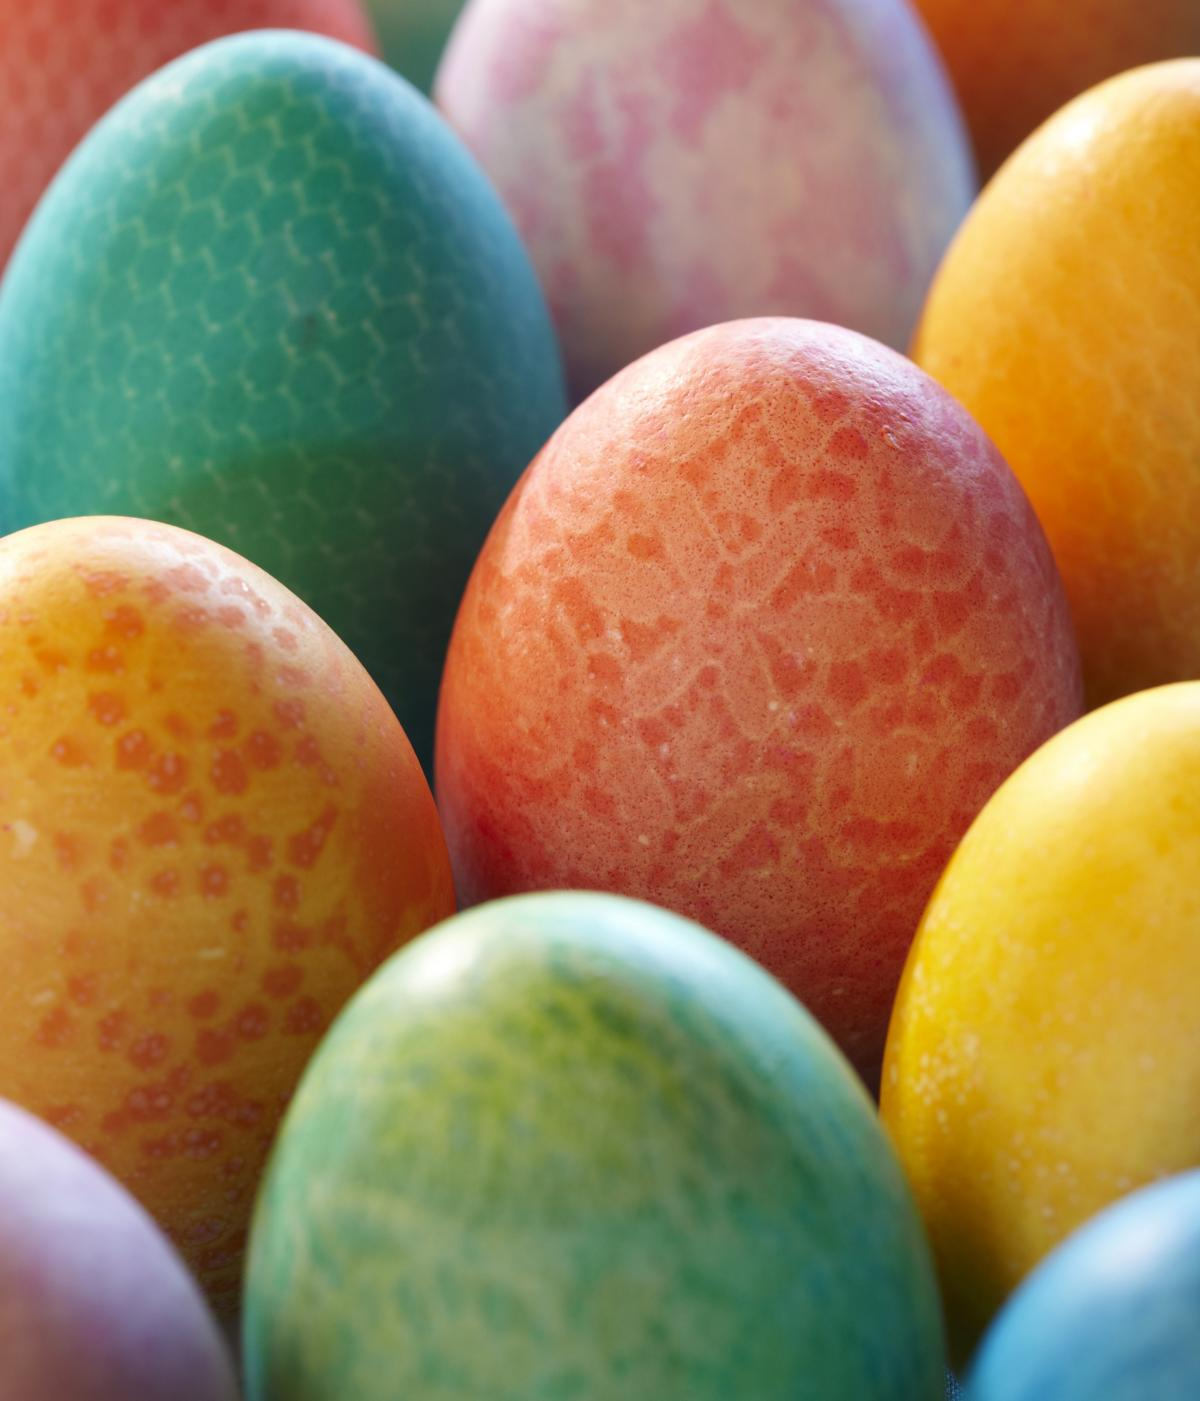 How to Dye Easter Eggs, Plus Easy Decorating Ideas | Allrecipes